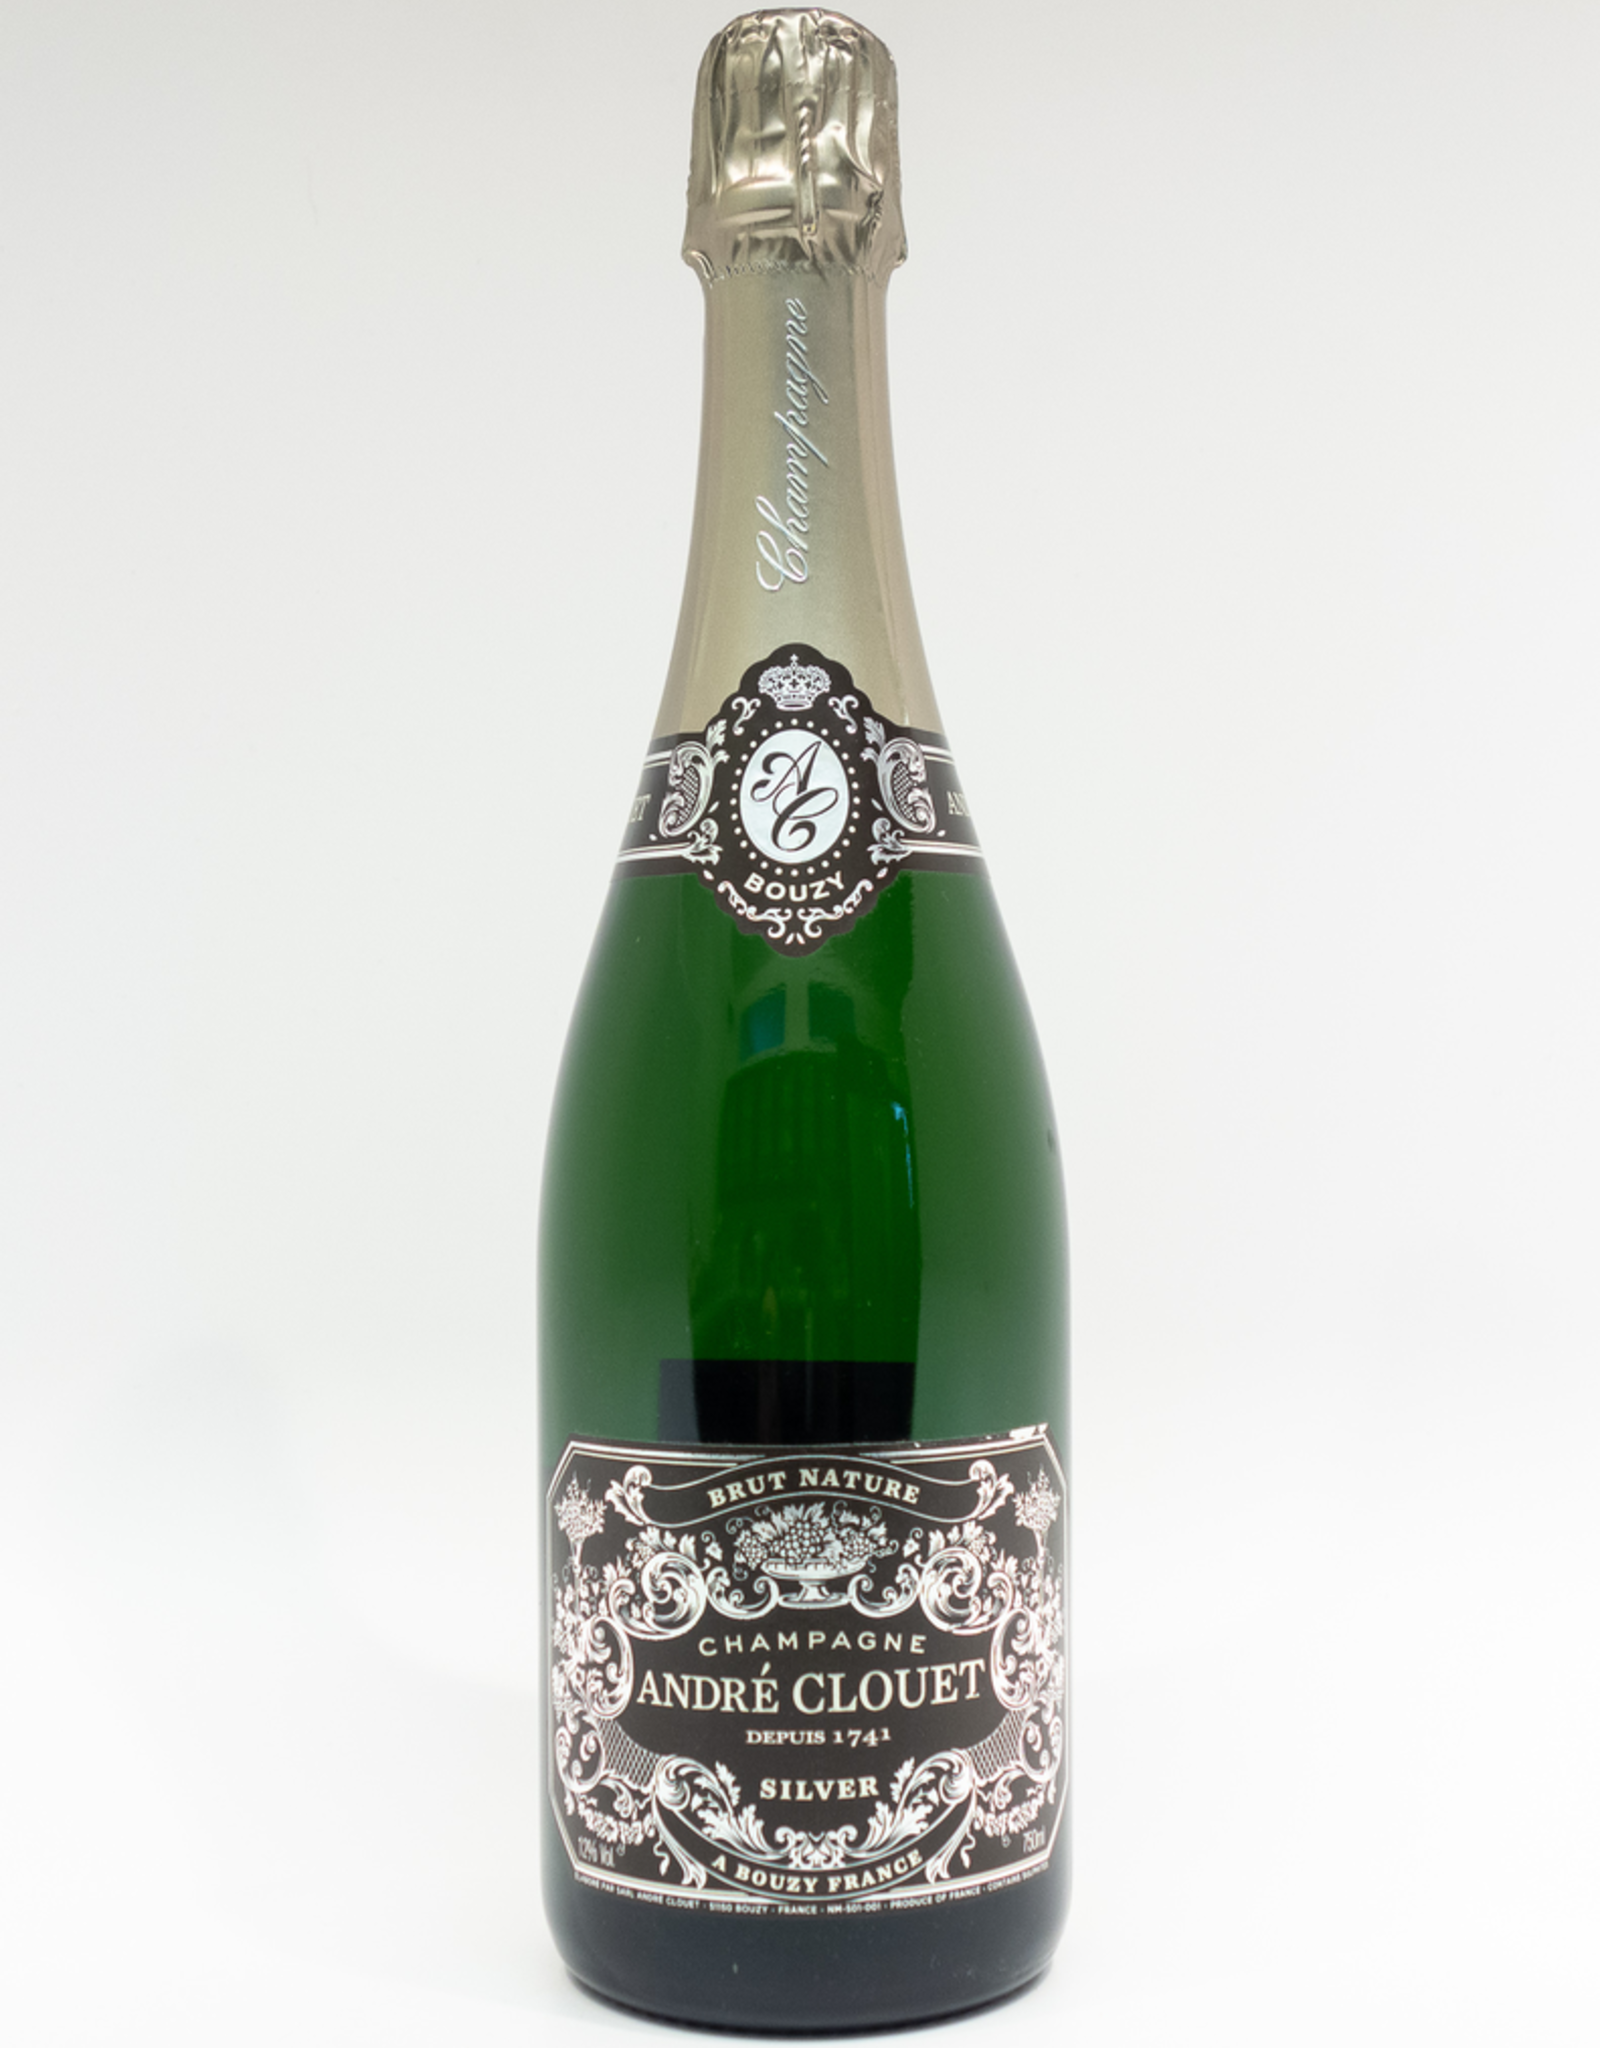 Wine-Sparkling-Champagne Andre Clouet Champagne AOC 'Silver' Brut Nature NV